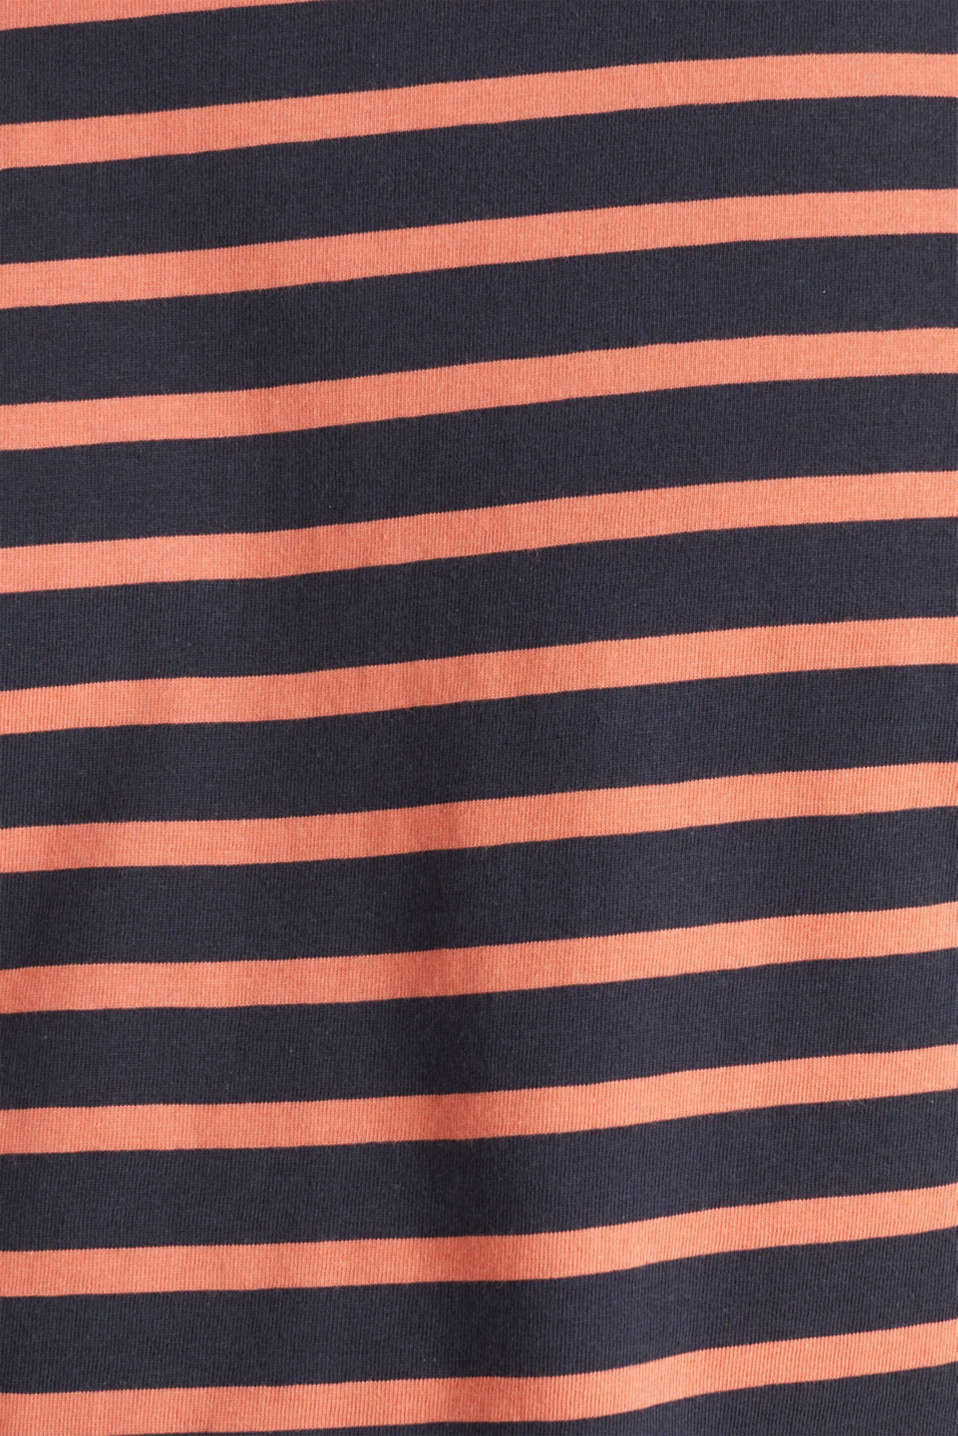 Striped jersey top, cotton, NAVY 3, detail image number 4